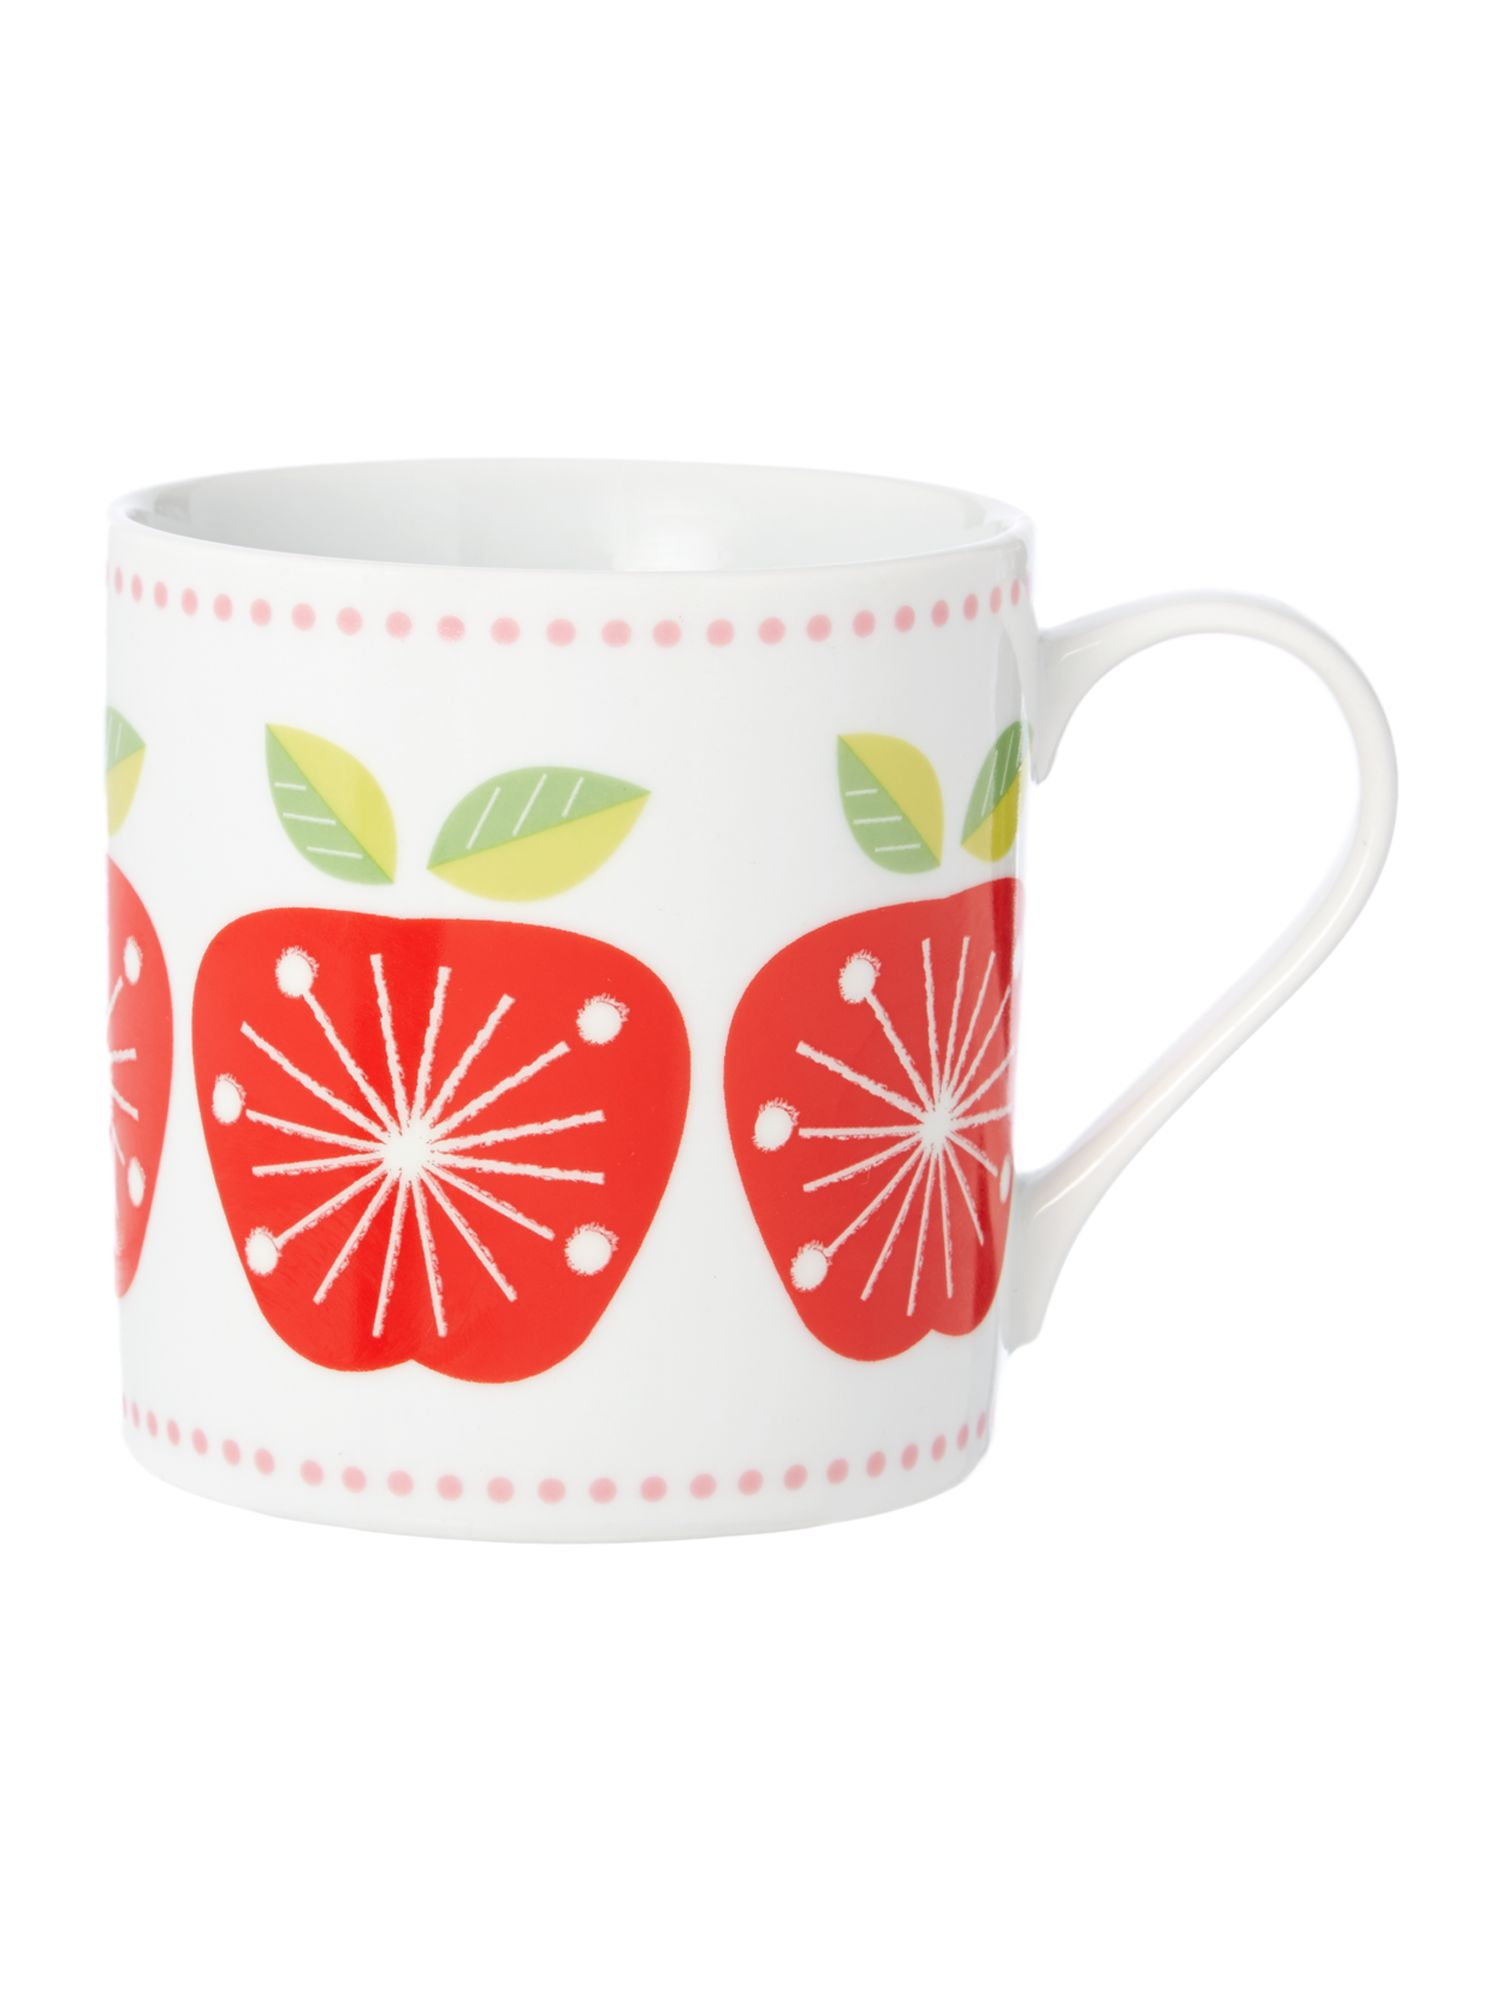 Linea Michelle Mason apple mug